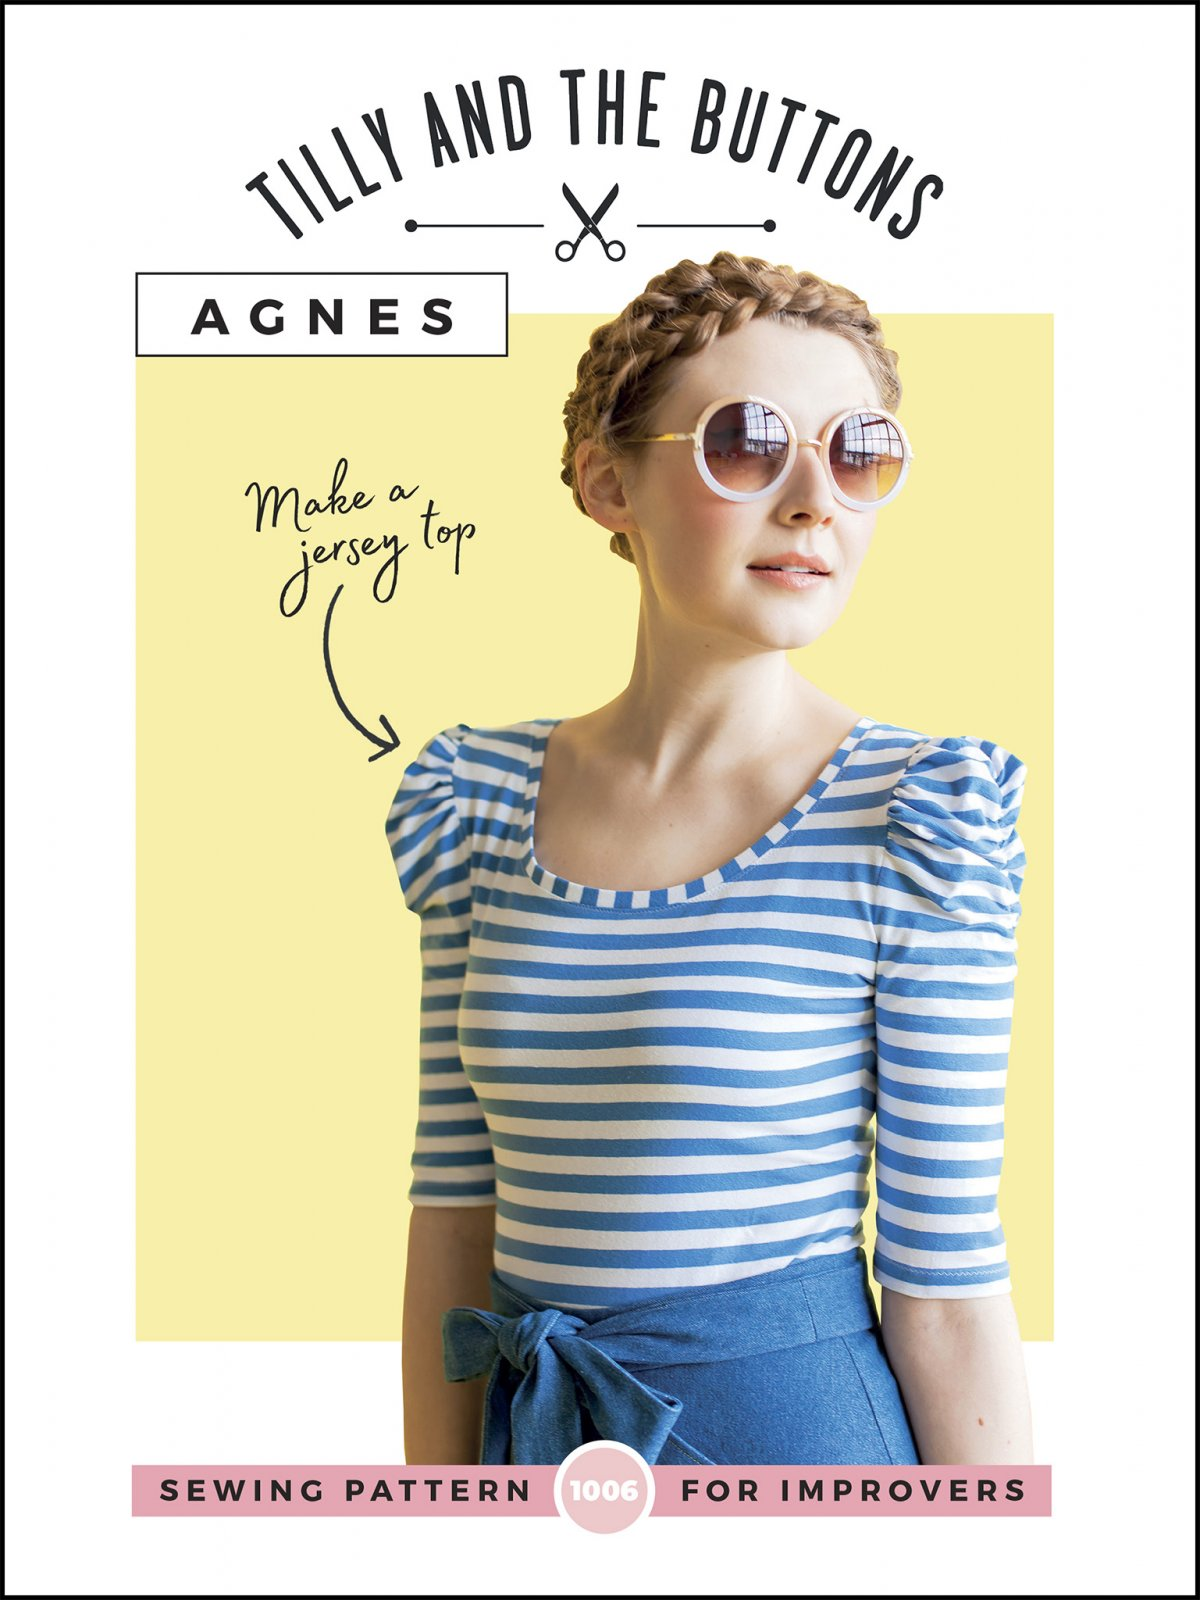 Tilly and the Buttons Agnes Knit Top Pattern